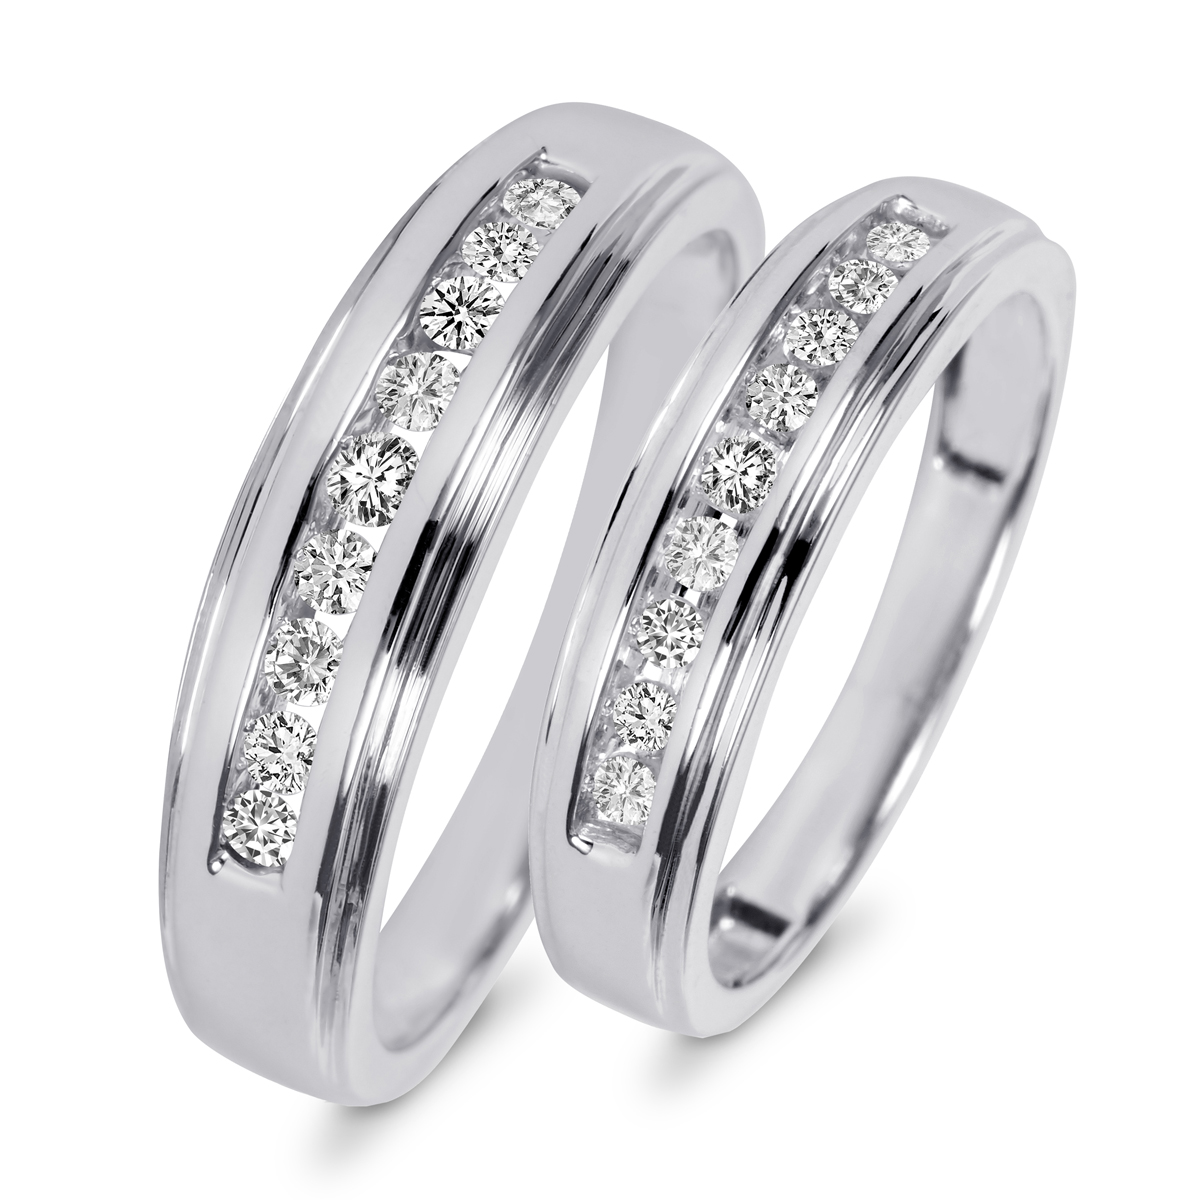 ladies 18k white gold diamonds oval eternity wedding band white gold wedding bands White Gold Diamonds Round Oval Eternity Wedding Band 00 Previous Next